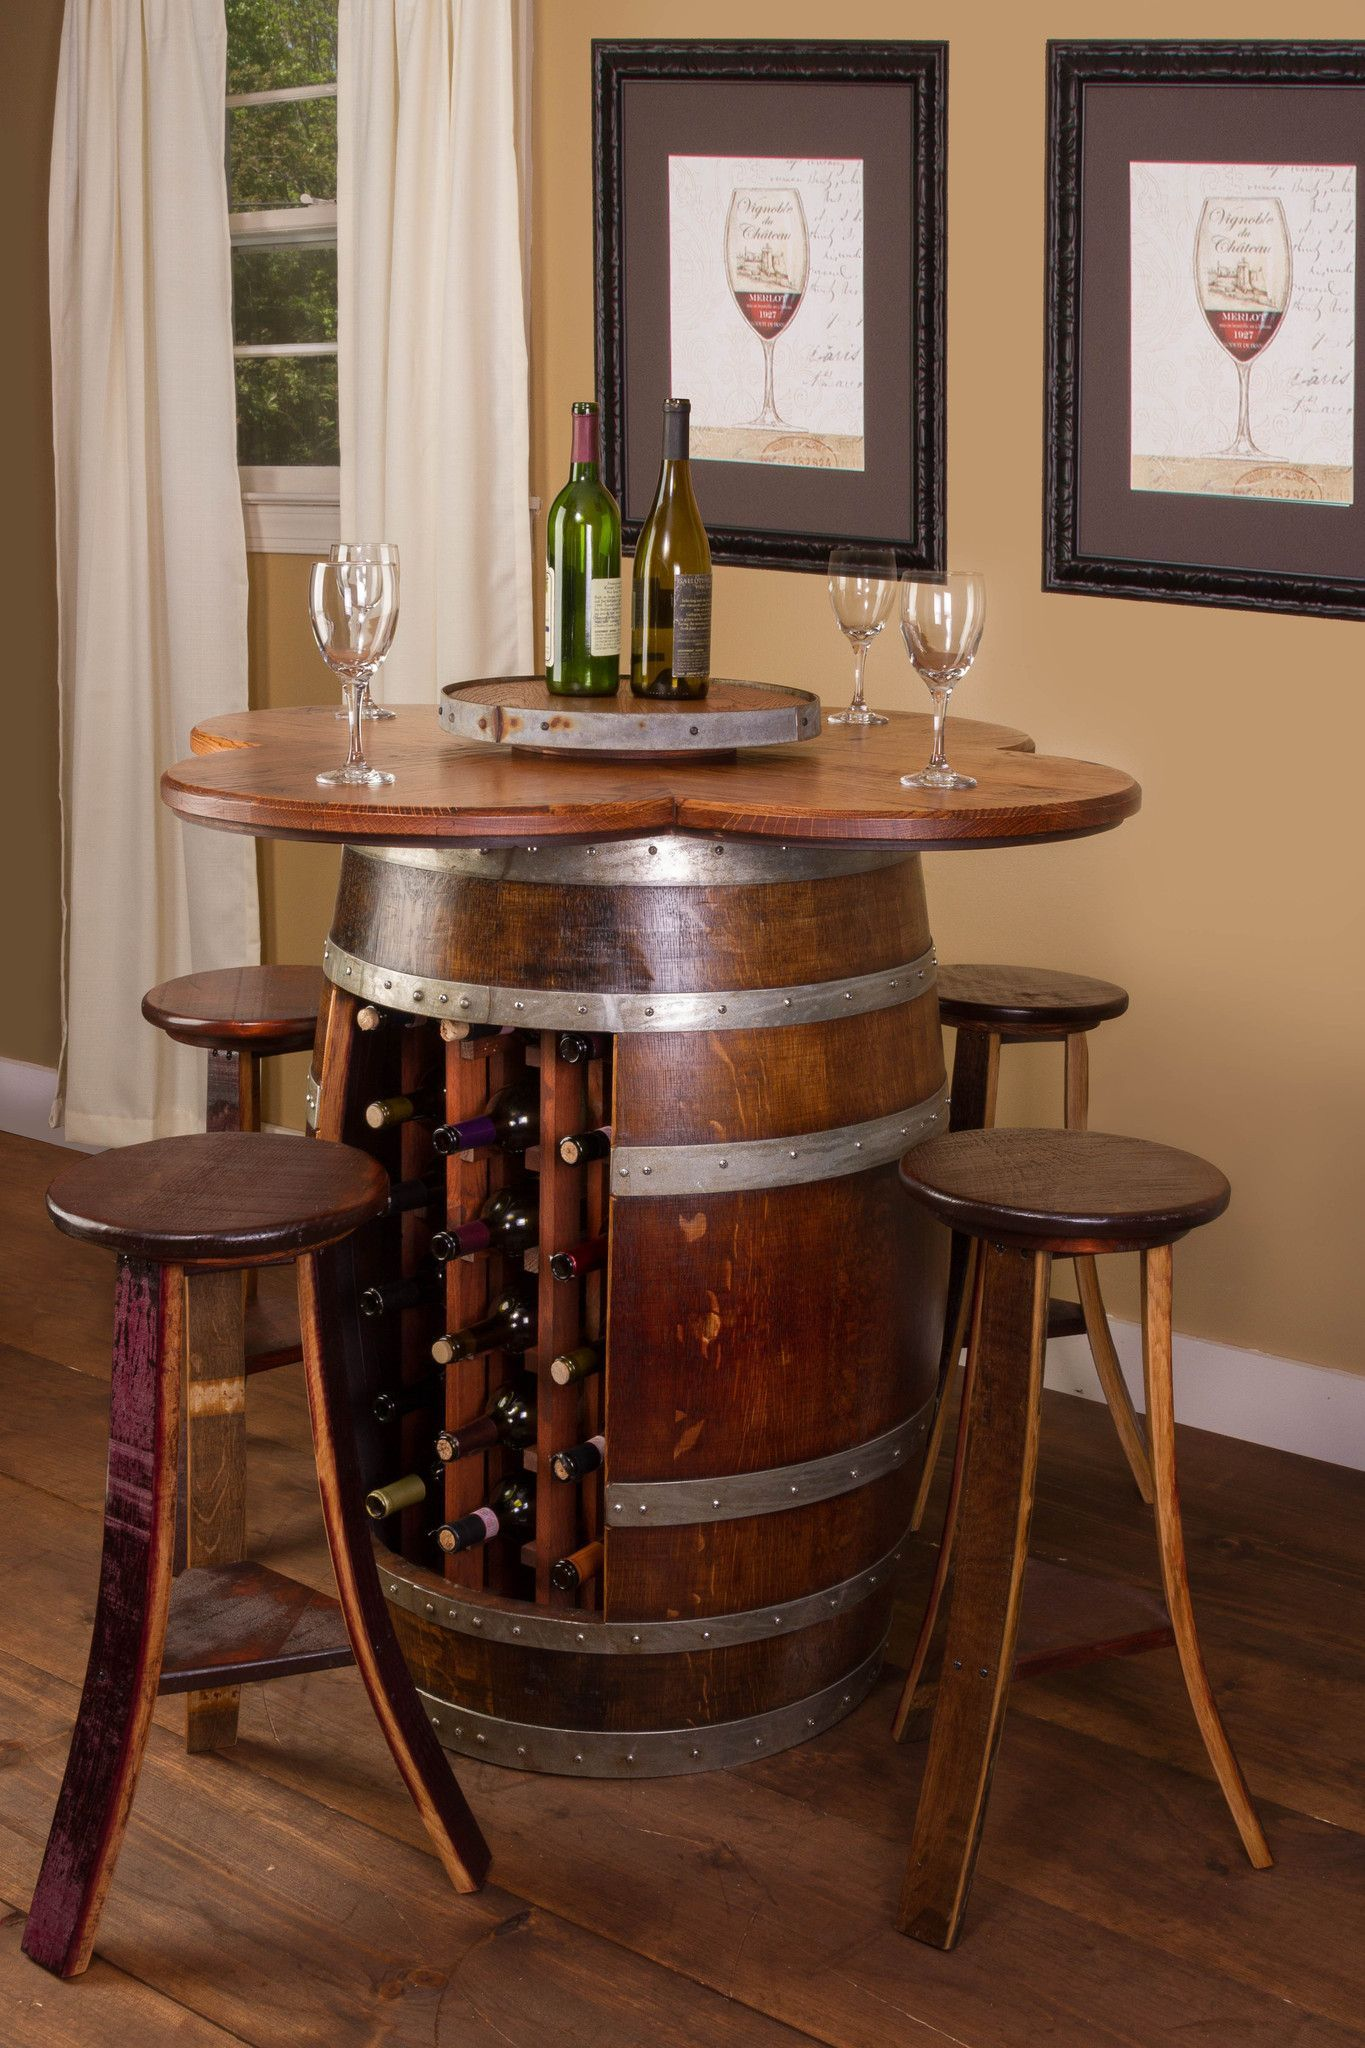 ideas at connecting wine hg latest discover barrel plan projects browse table photos pin and the bar homeowners rack furniture with design home dunning sink